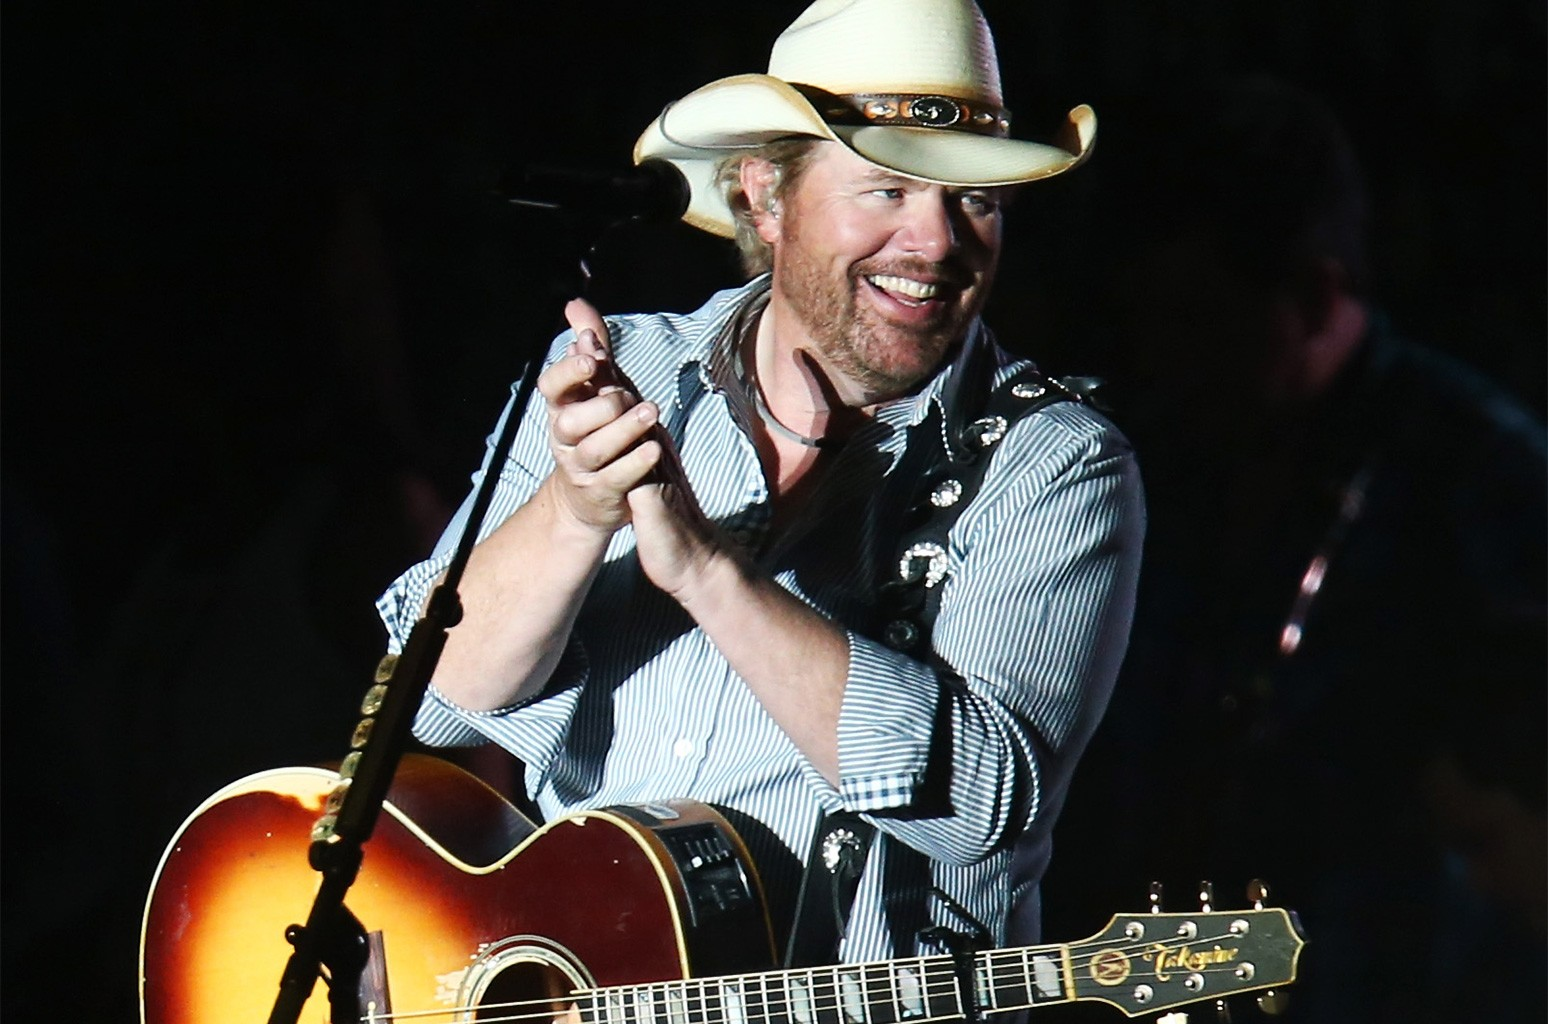 Toby Keith performs onstage at day 1 of the 2013 Stagecoach California's Country Music Festival at The Empire Polo Field on April 26, 2013 in Indio, Calif.